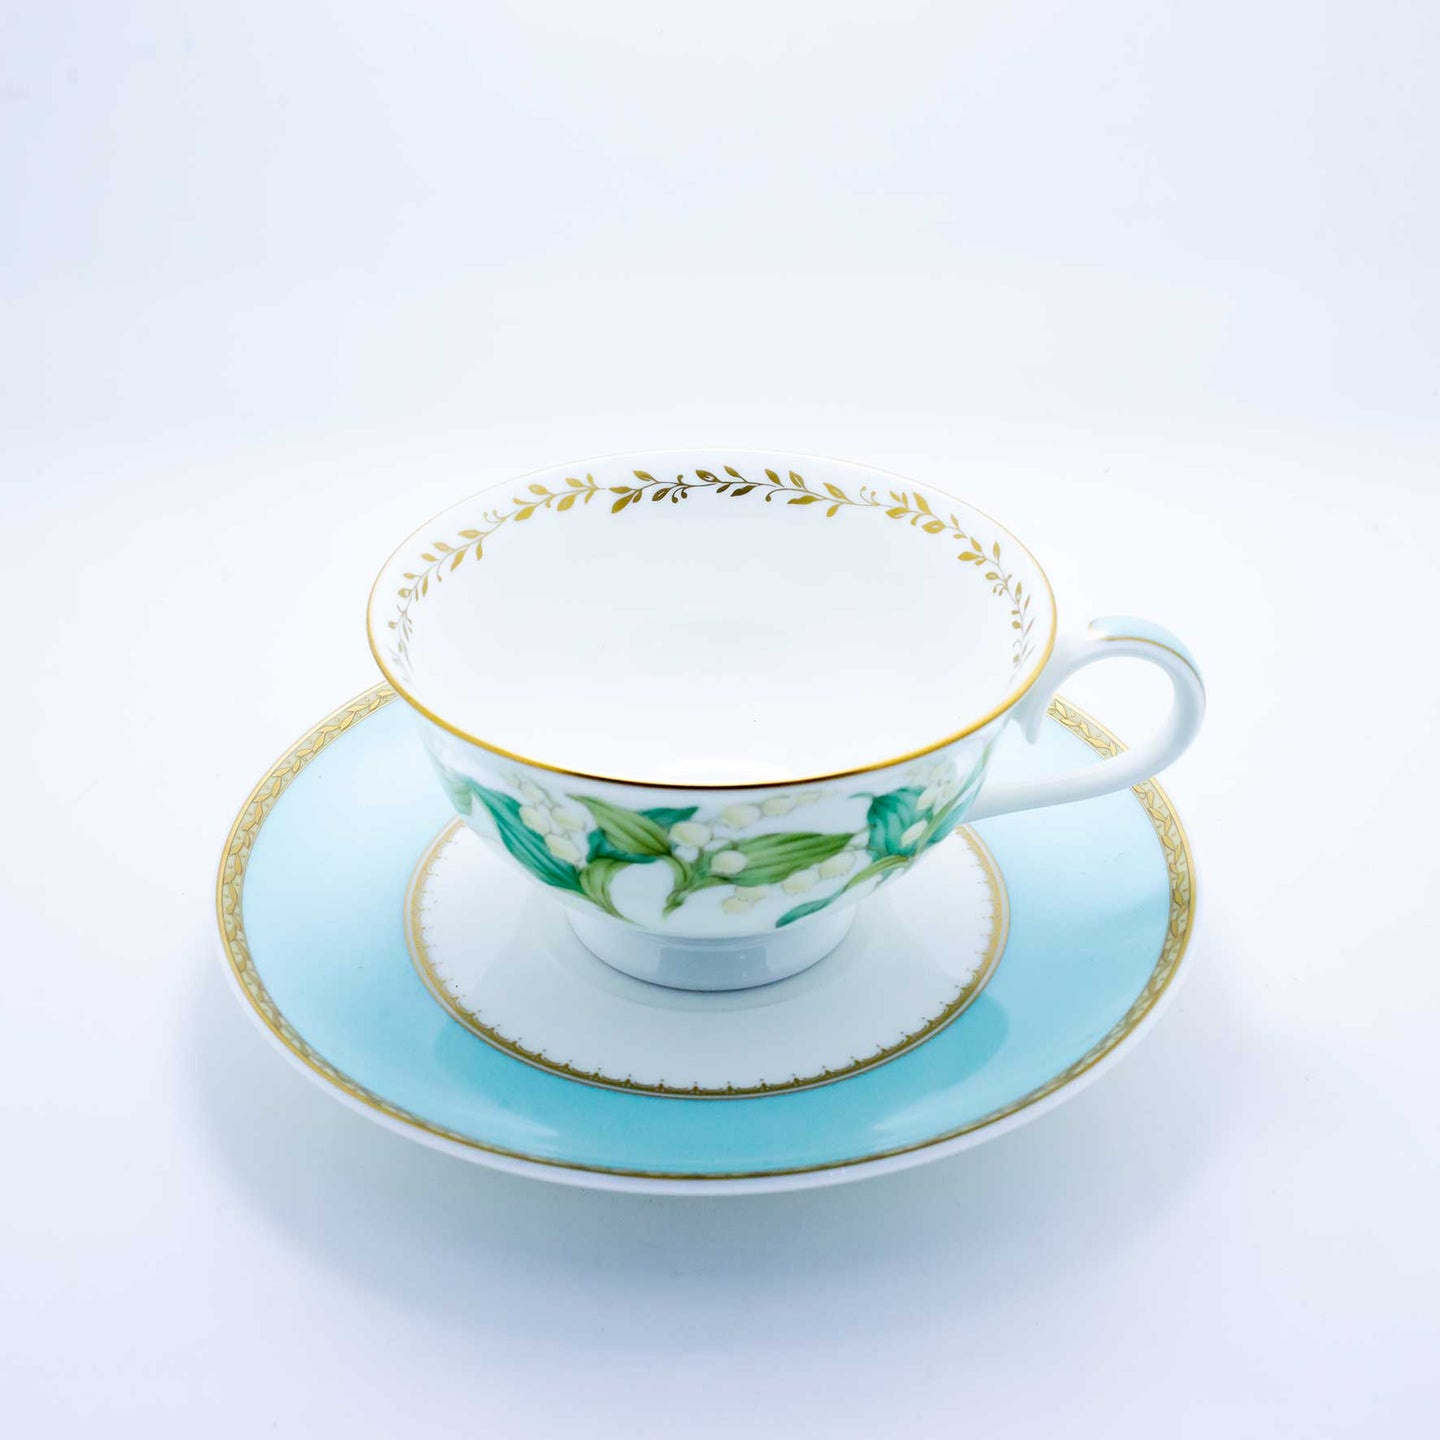 Refresh Moment Narumi Mint Leaves Teacup and Saucer